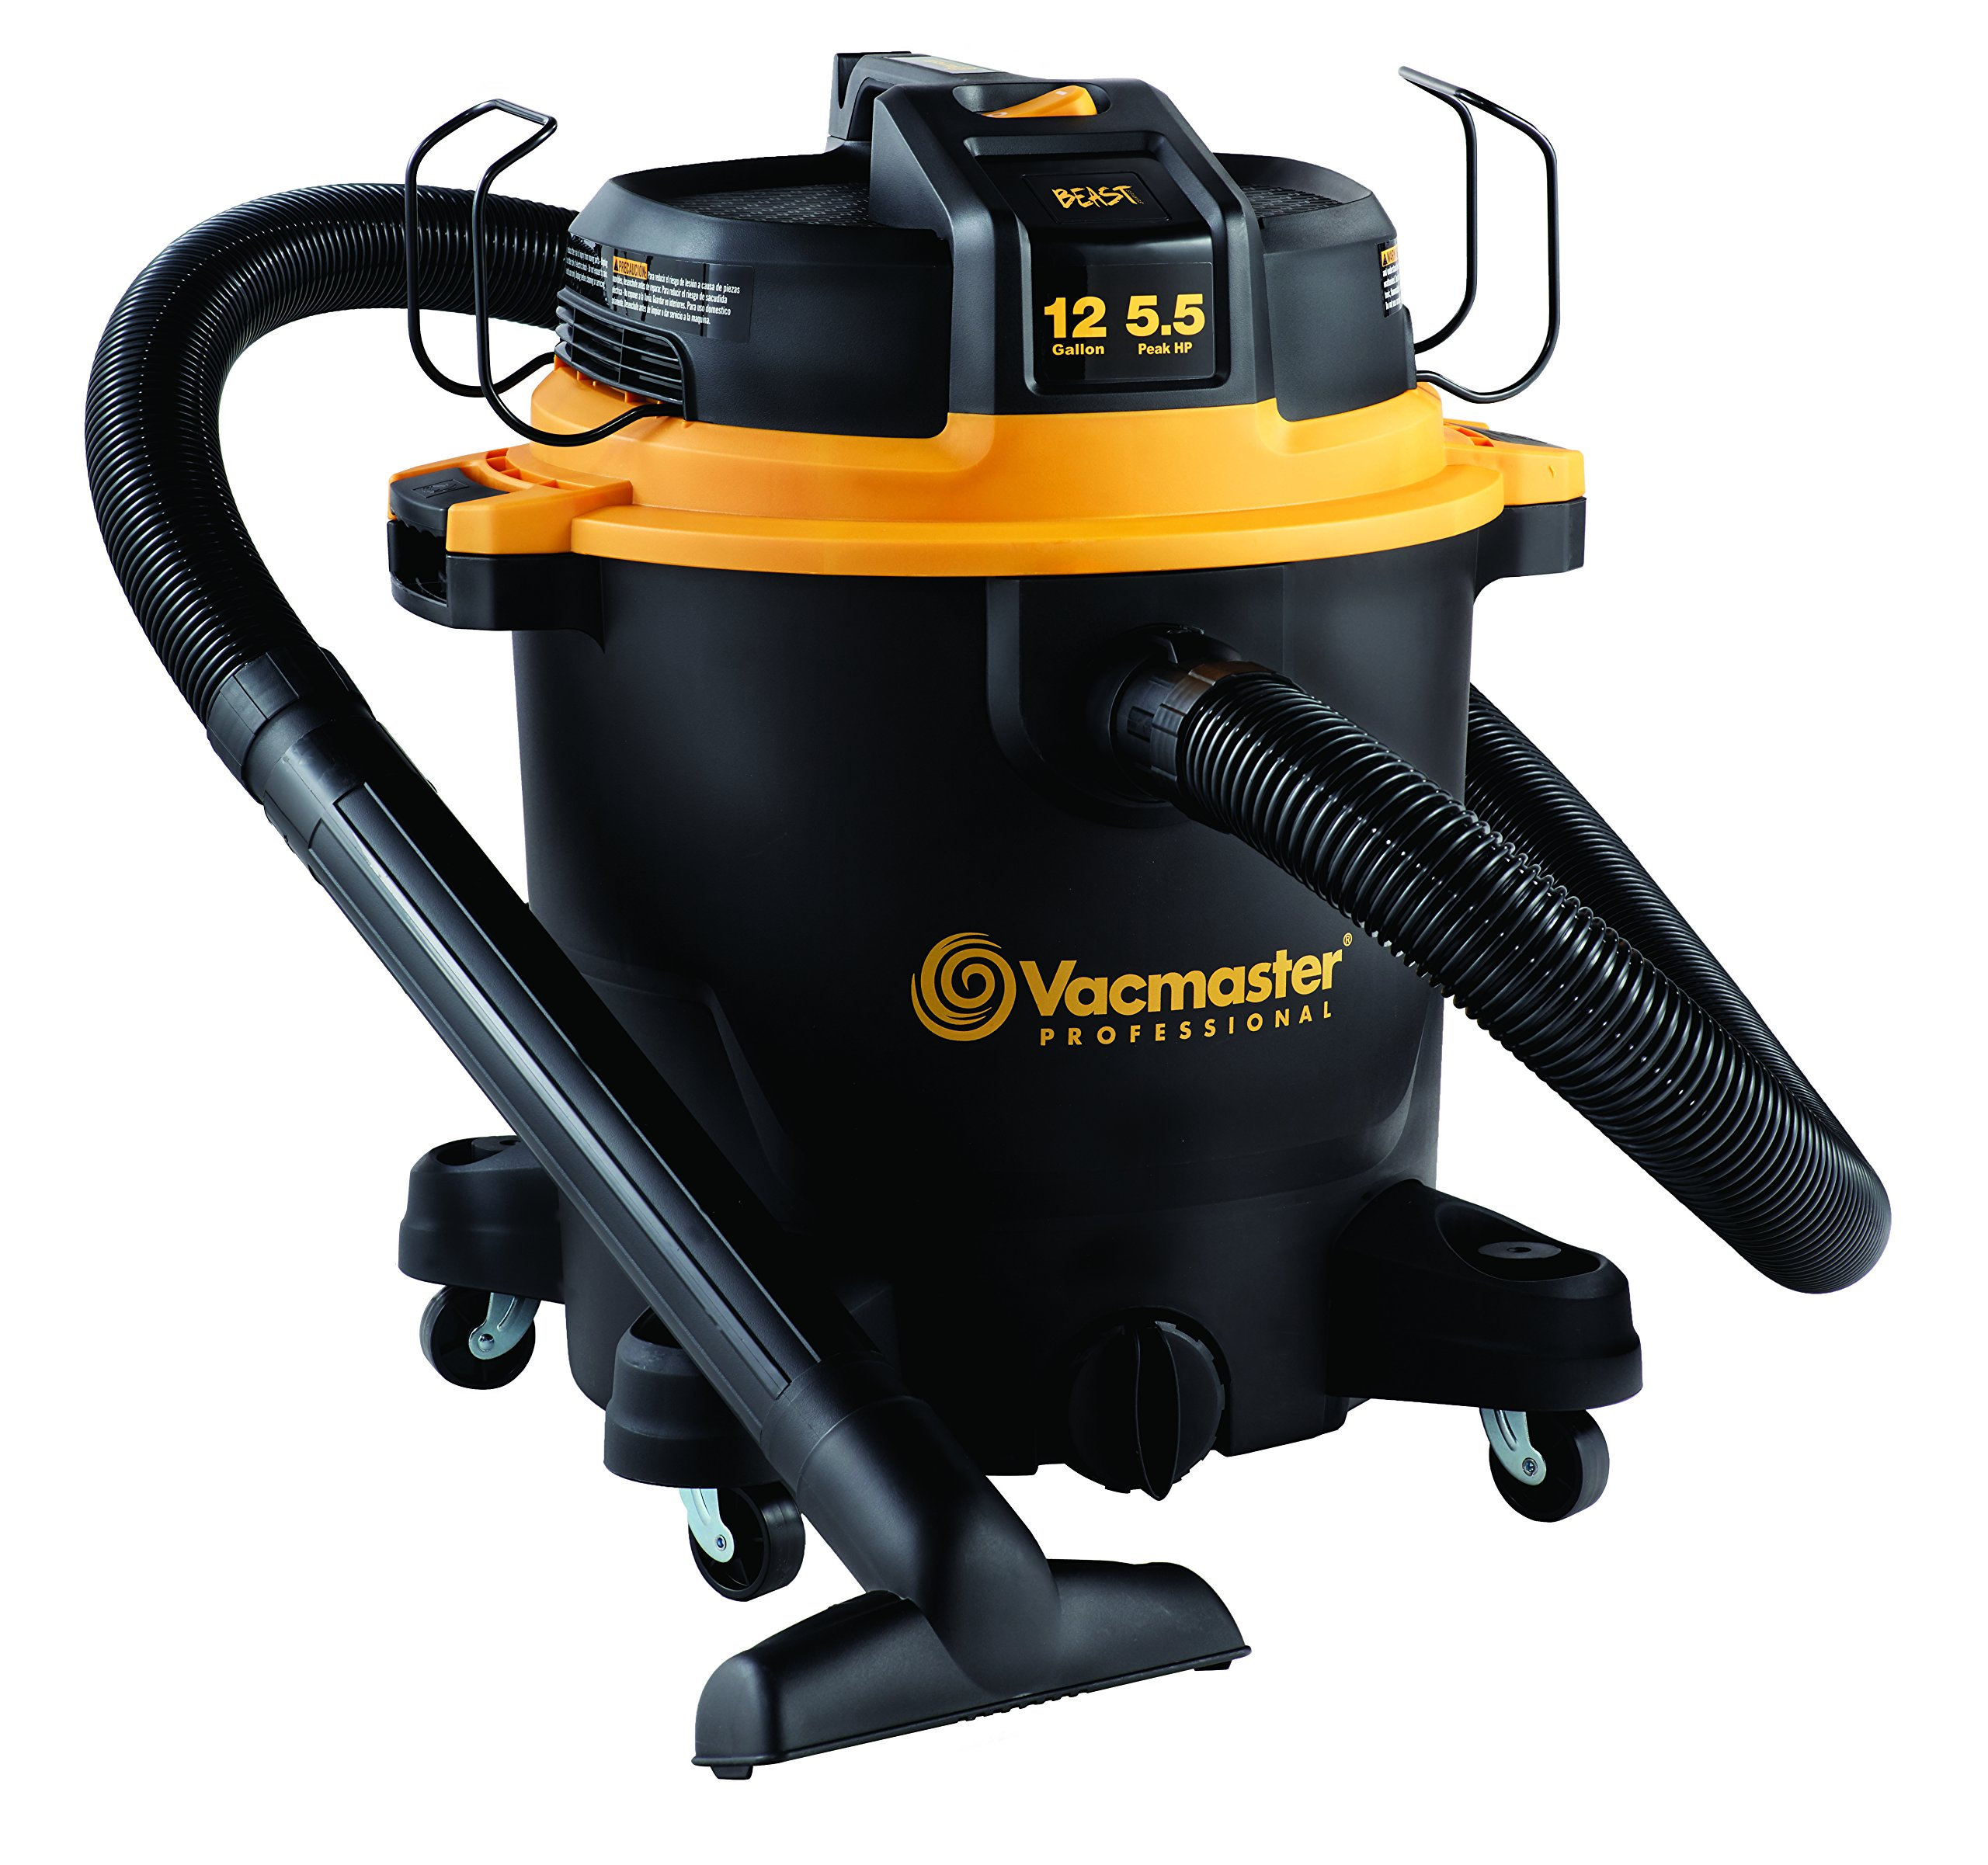 Vacmaster Professional - Professional Wet/Dry Vac, 12 Gallon, Beast Series, 5.5